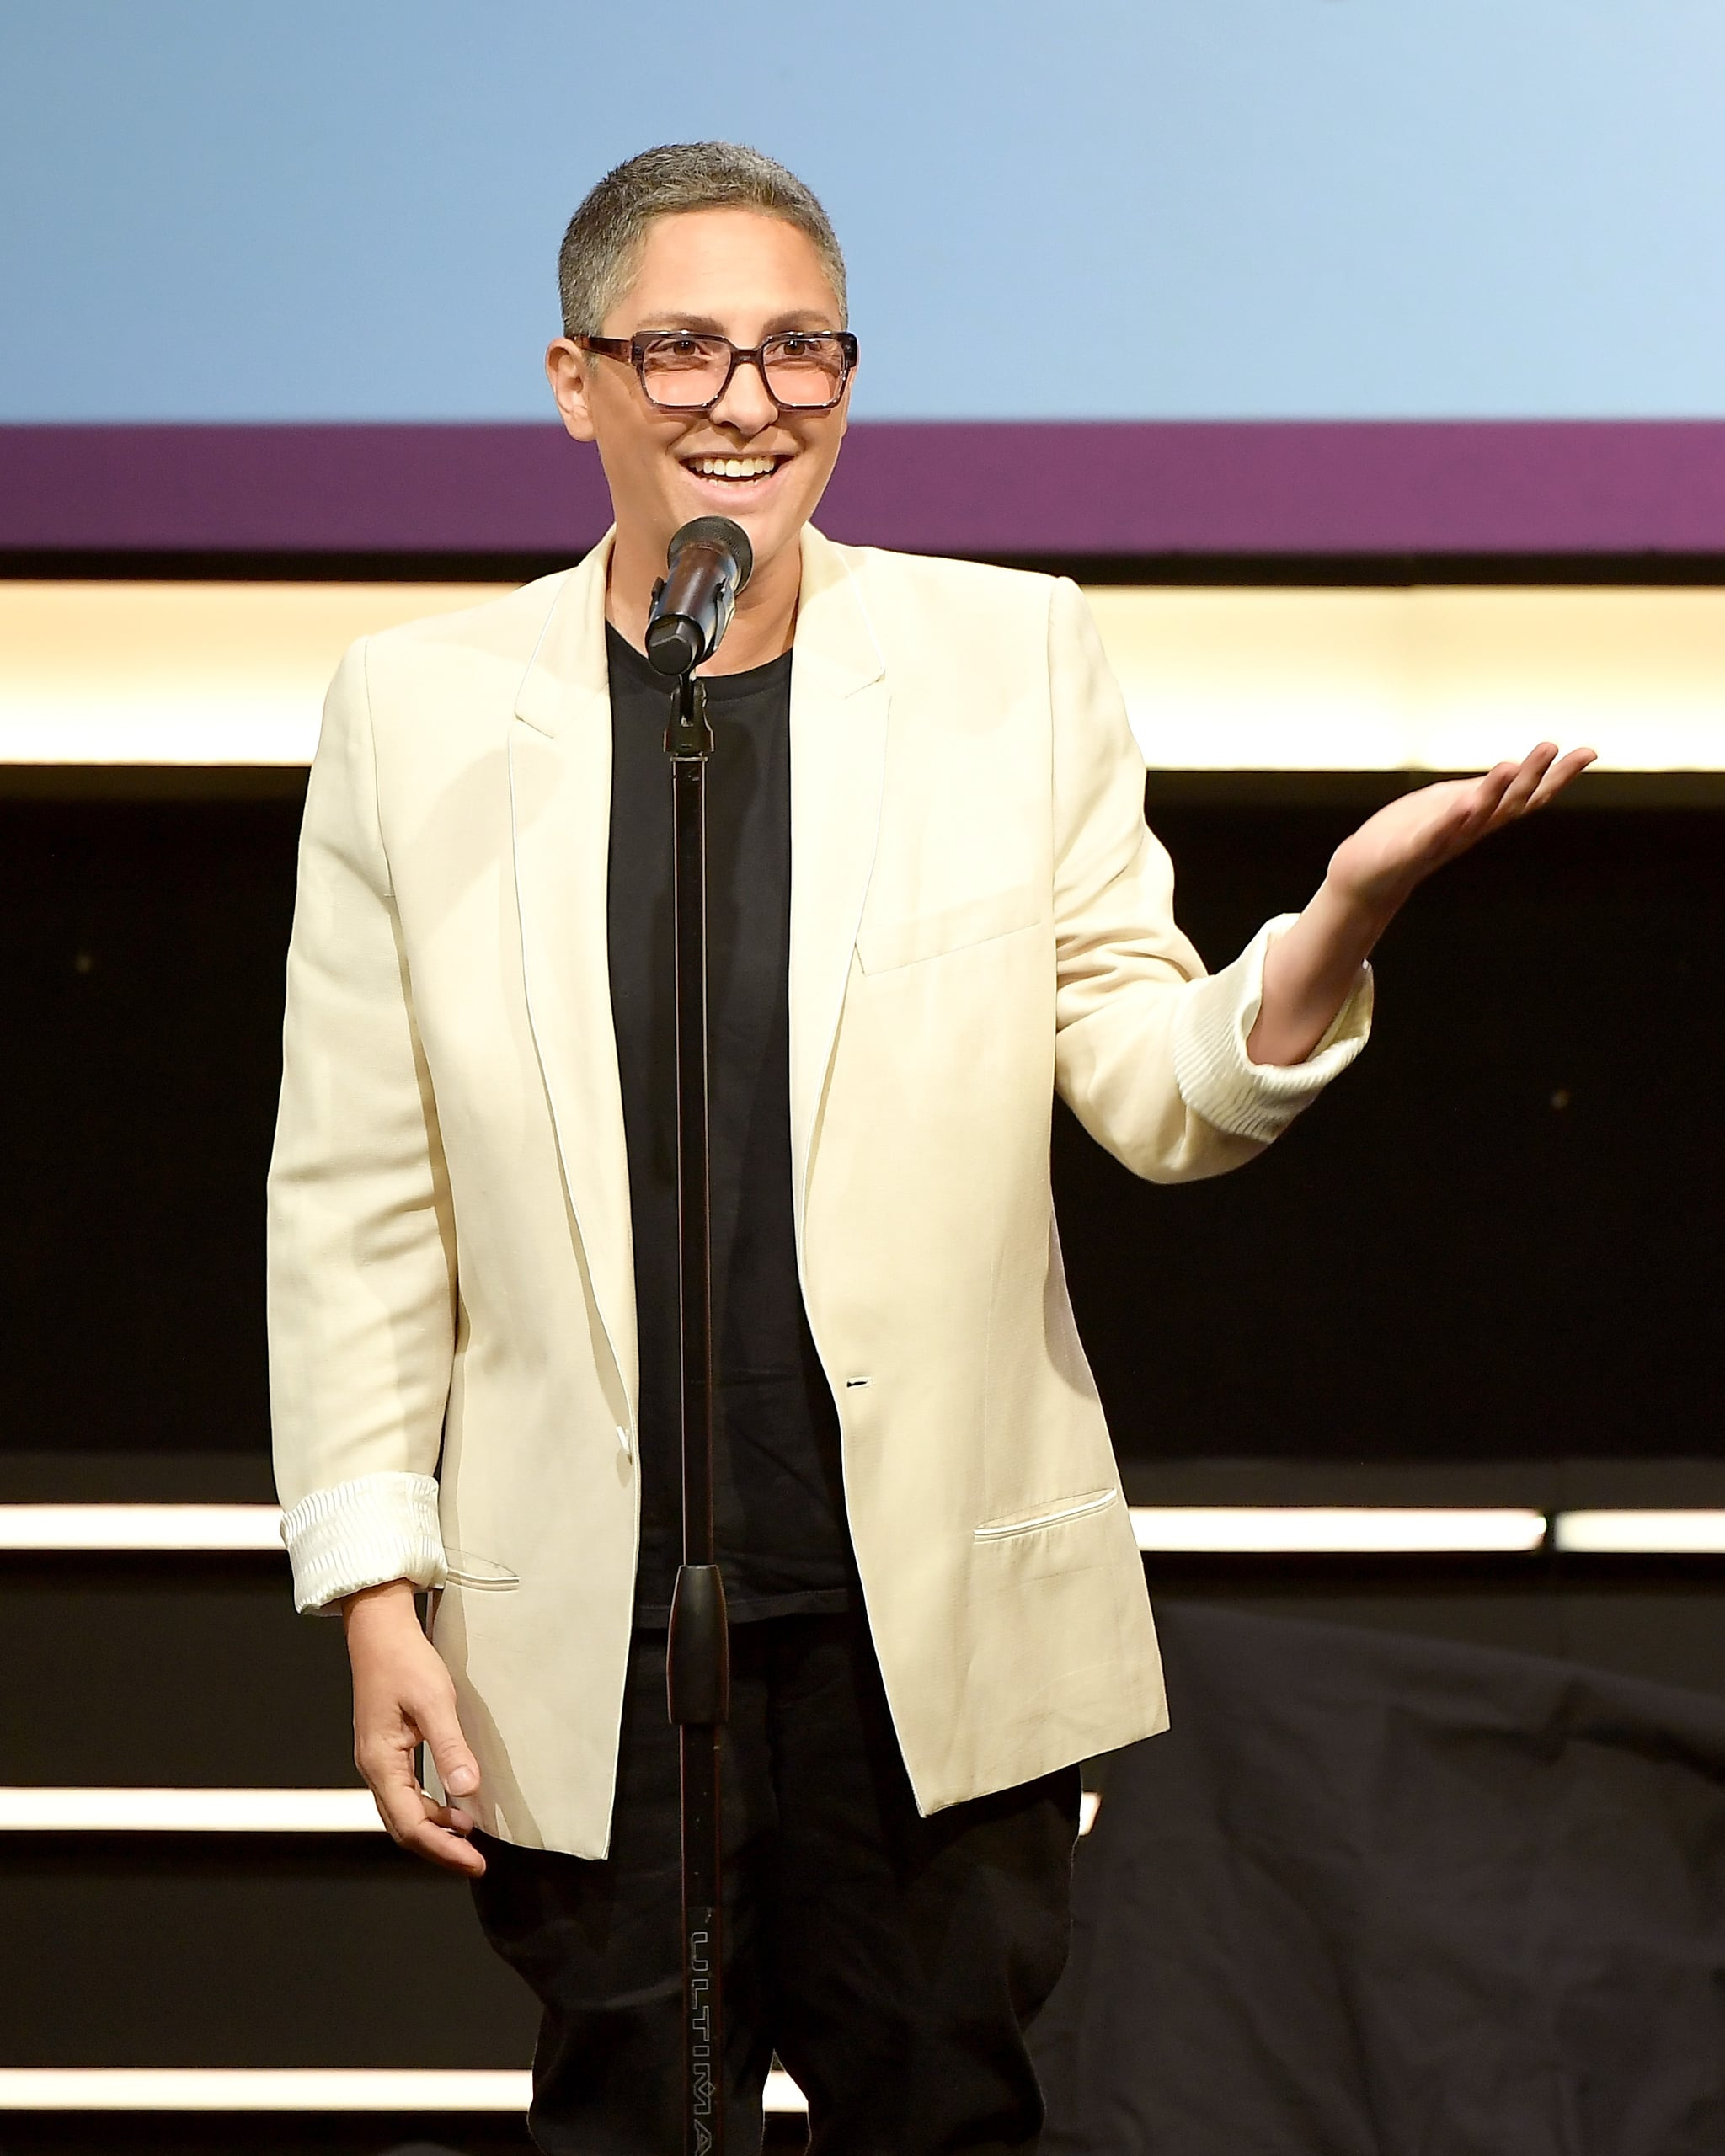 BEVERLY HILLS, CA - OCTOBER 07:  Honoree Jill Soloway accepts Point Impact Award onstage at Point Honors Los Angeles 2017, benefiting Point Foundation, at The Beverly Hilton Hotel on October 7, 2017 in Beverly Hills, California.  (Photo by Matt Winkelmeyer/Getty Images for Point Honors)